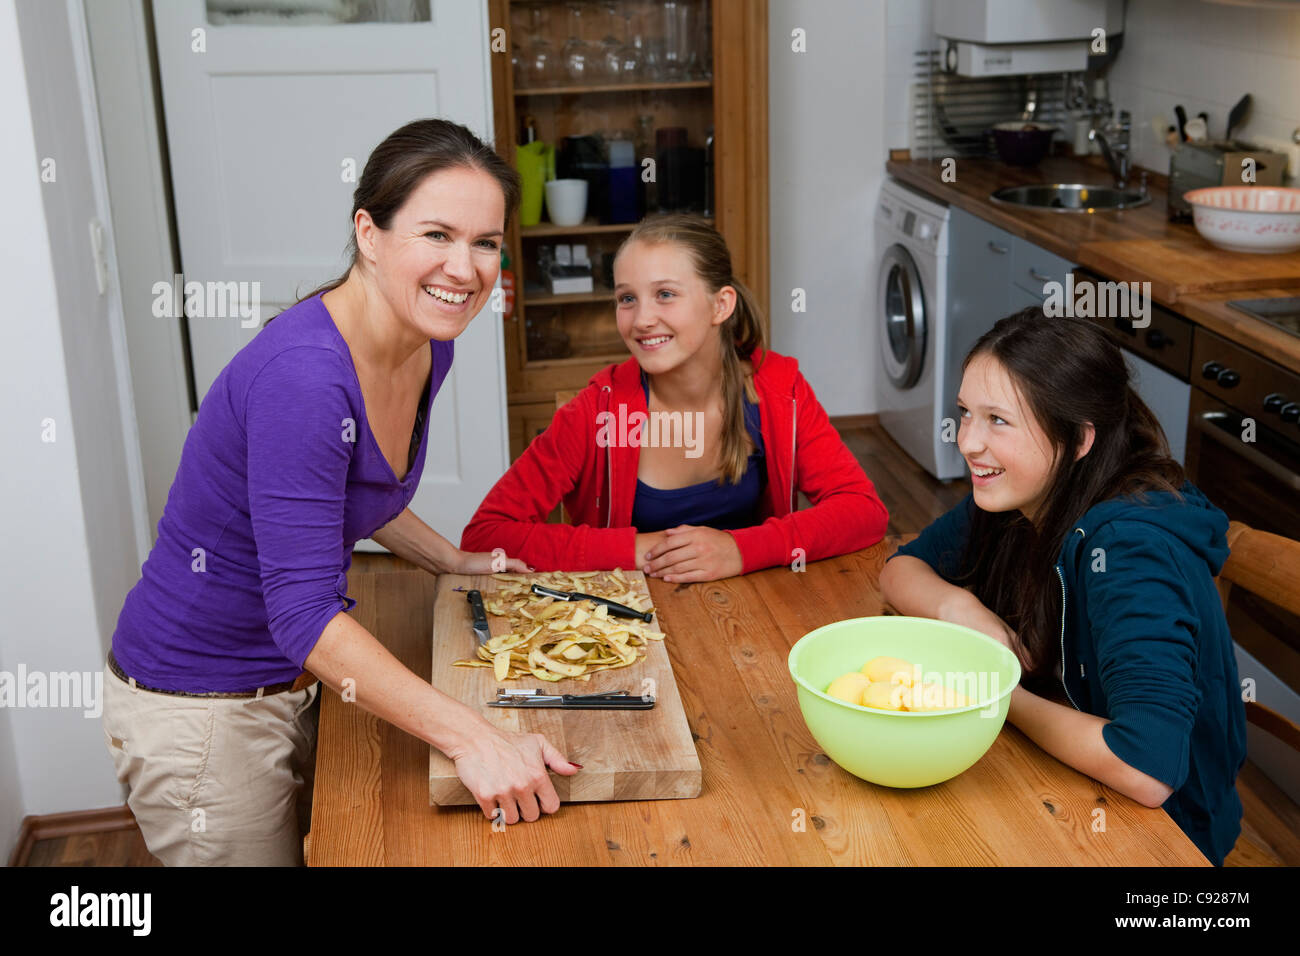 Mother and daughters cooking in kitchen - Stock Image